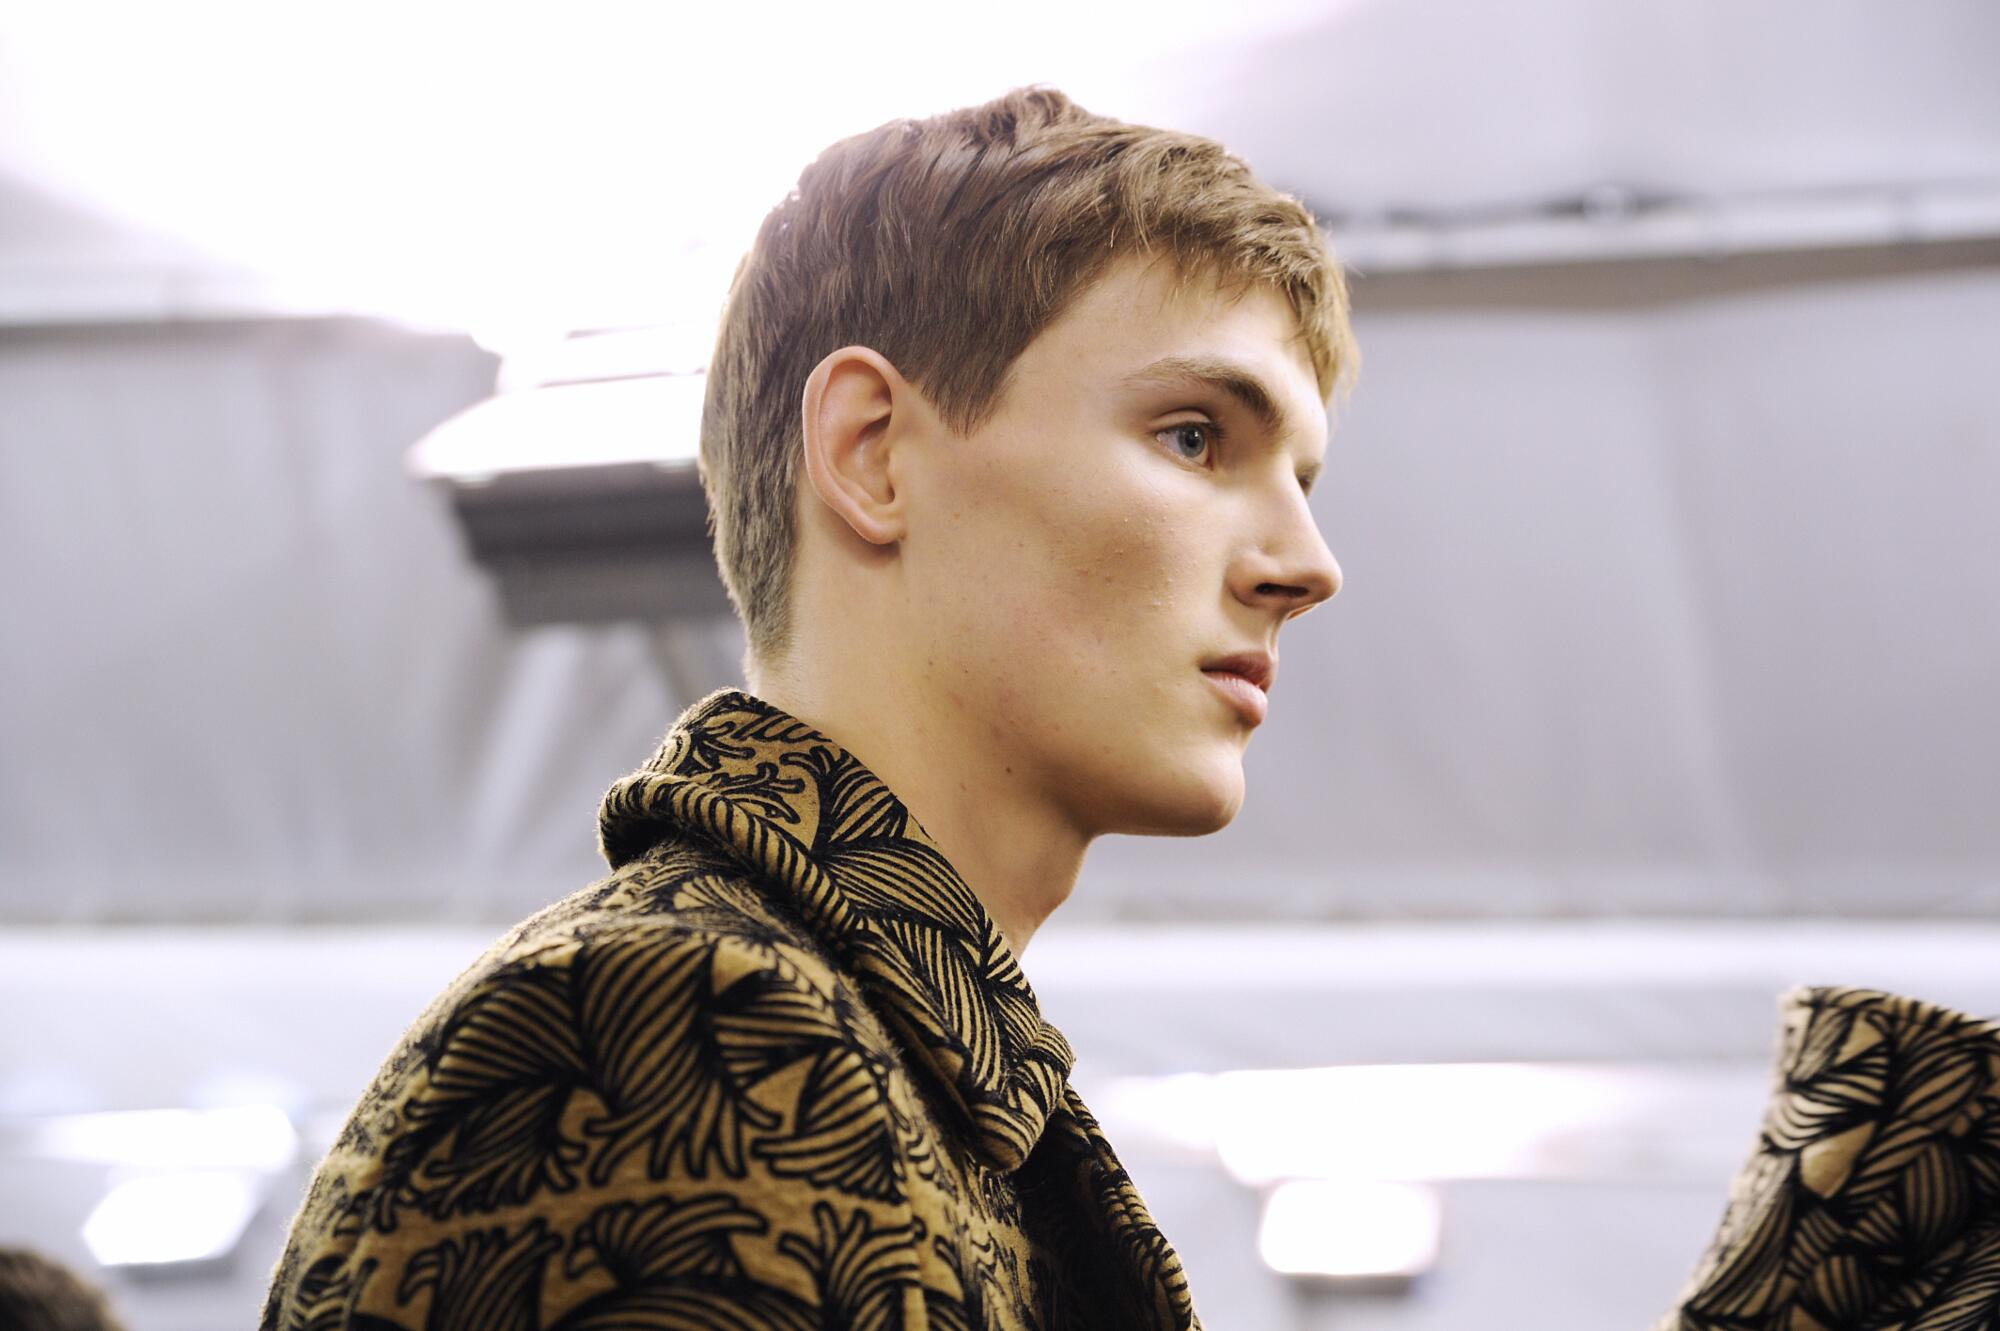 Backstage Louis Vuitton Man Model Fall 2015 Paris Fashion Week